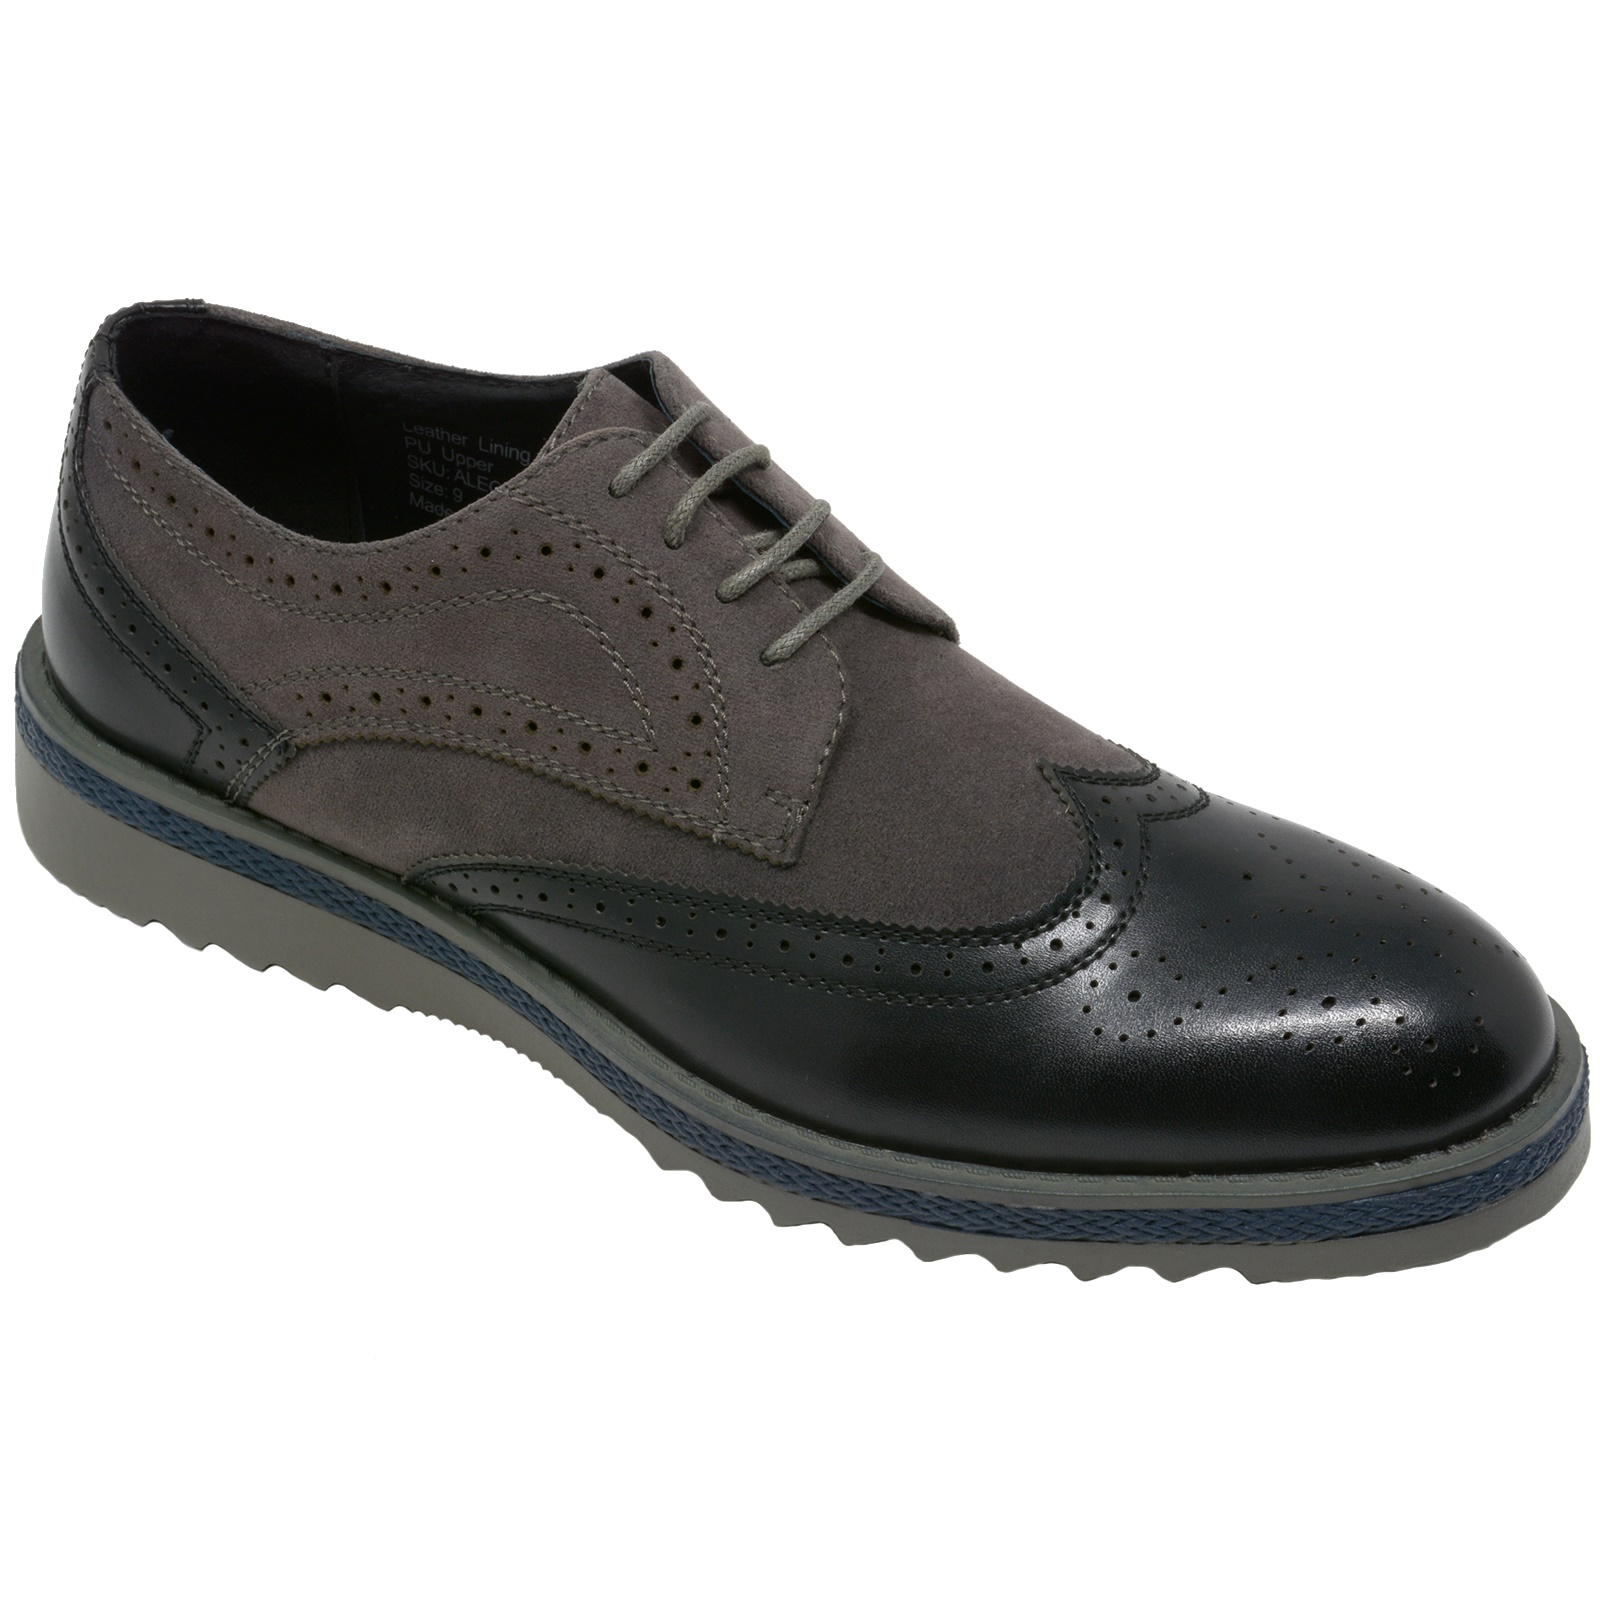 Alpine-Swiss-Alec-Mens-Wingtip-Shoes-1-5-Ripple-Sole-Leather-Insole-amp-Lining thumbnail 19